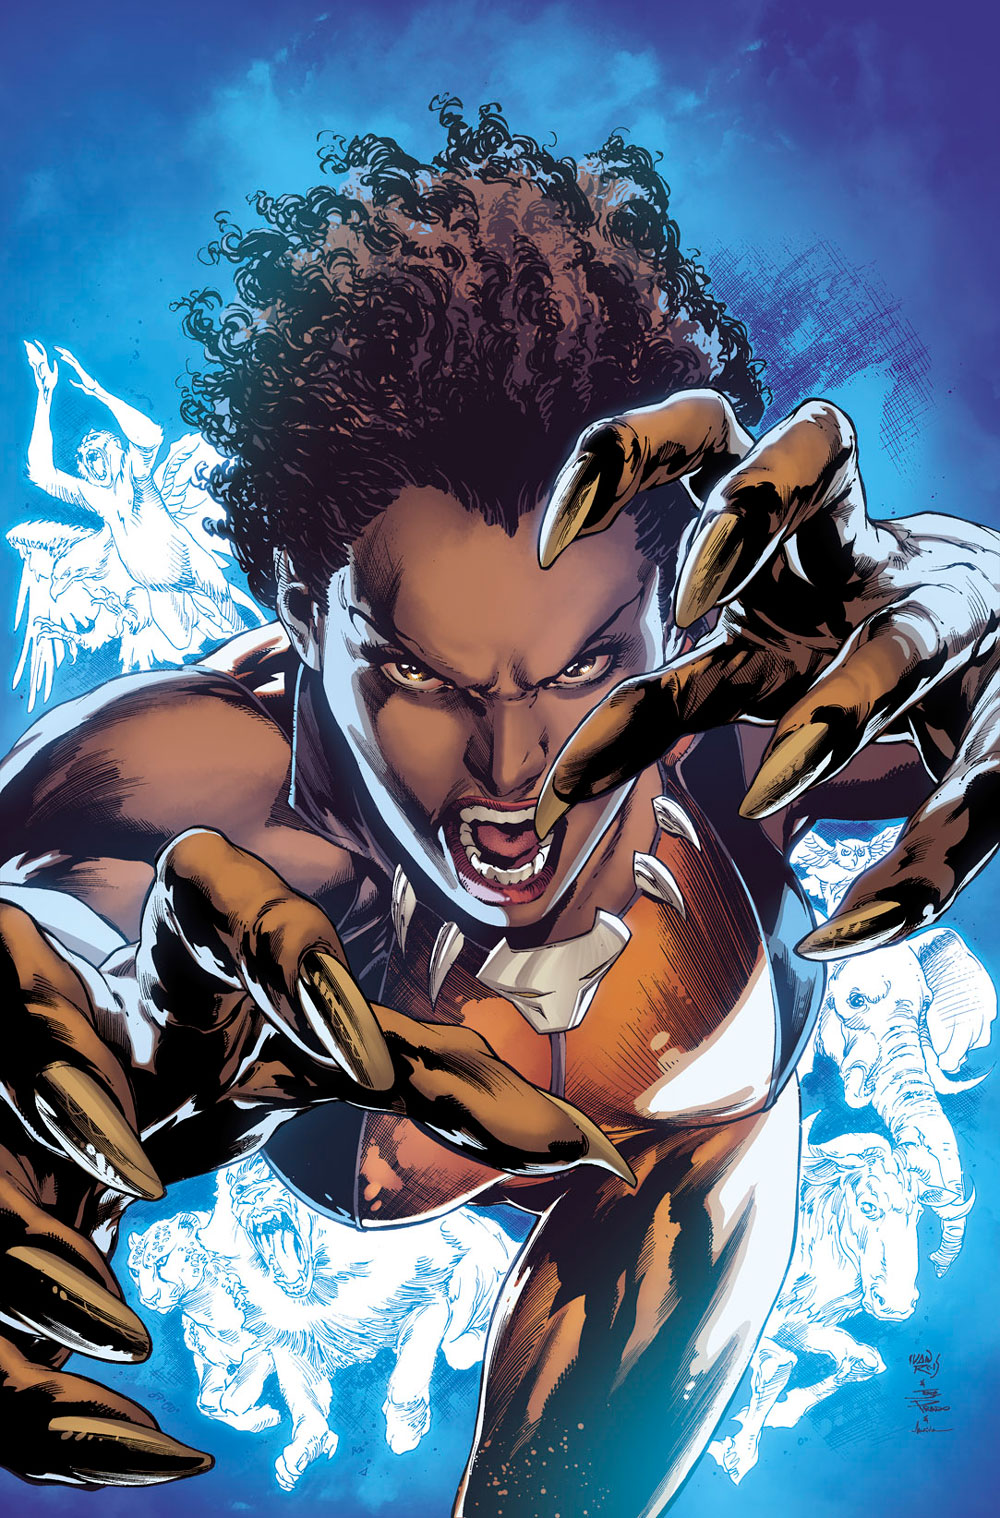 Justice League of America: Vixen #1